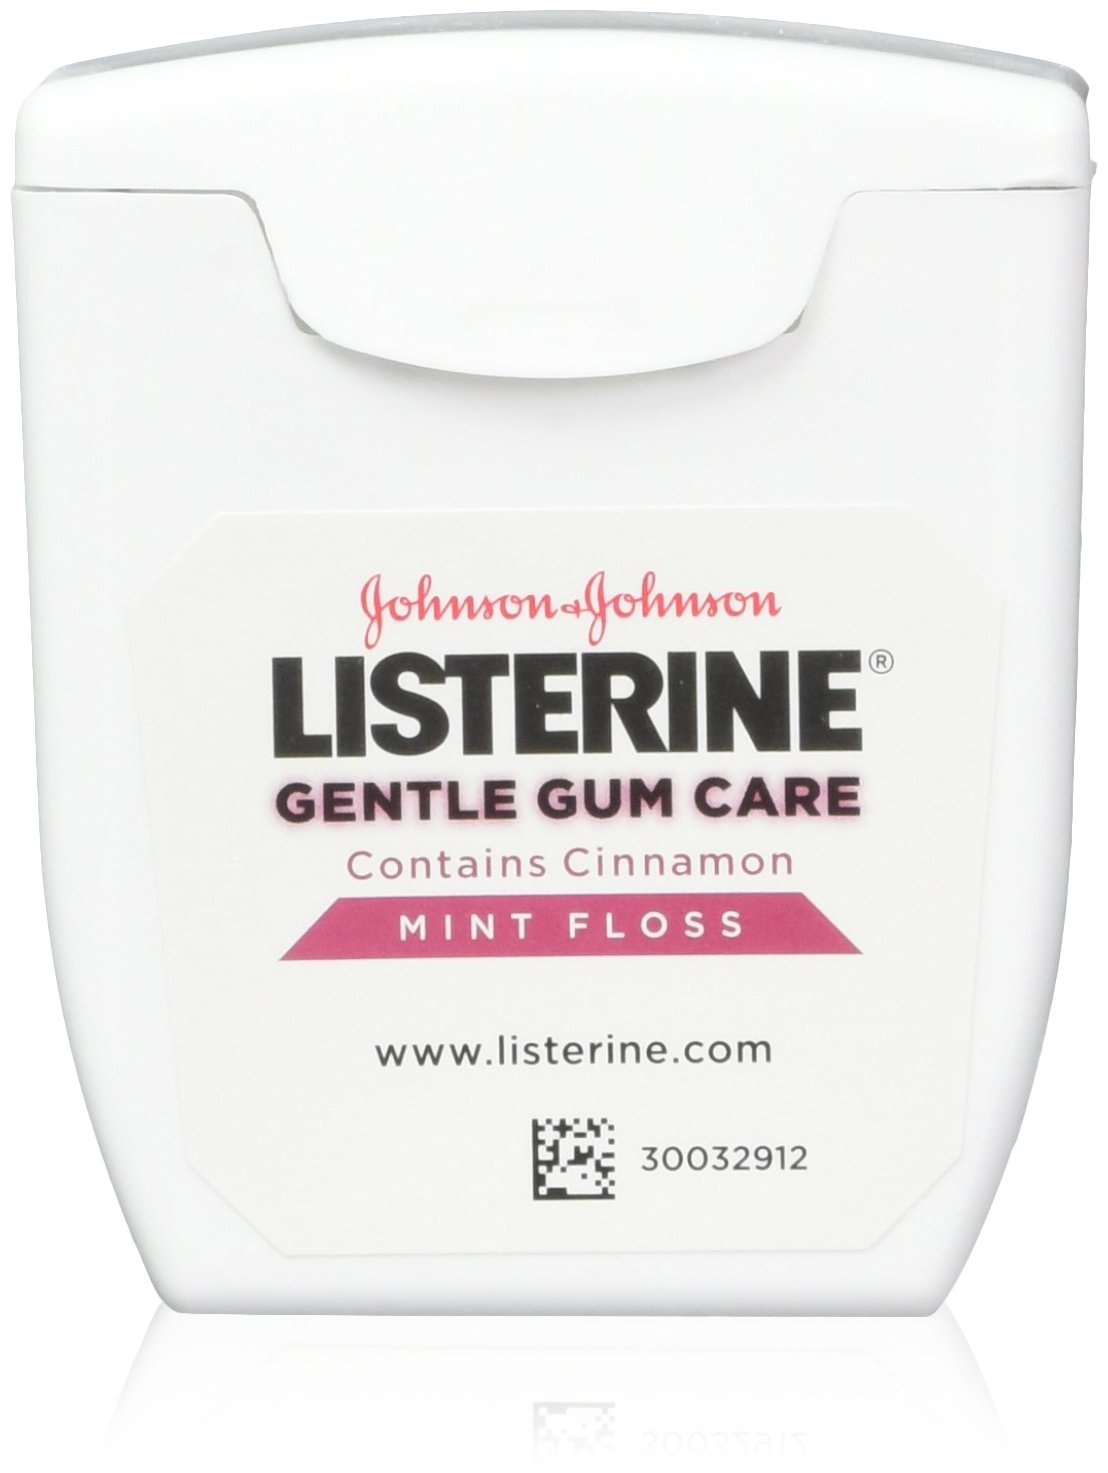 Listerine Gentle Gum Mint Floss, With Cinnamon 50 Yards (Pack of 5)